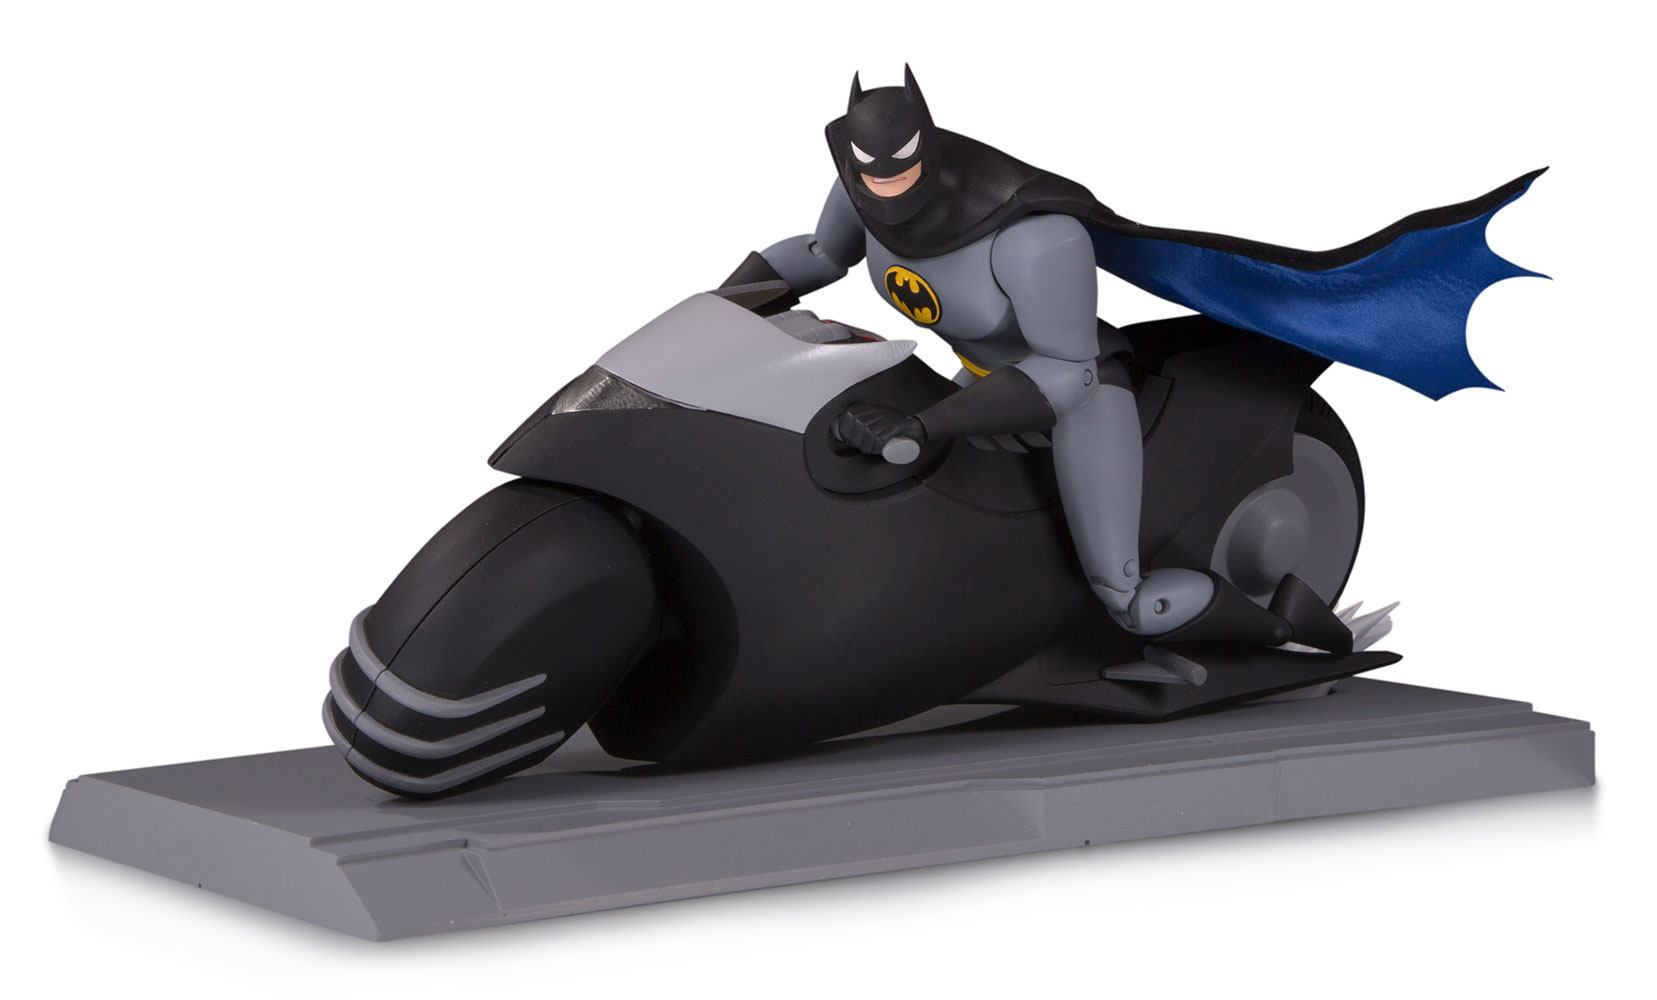 Batman with Batcycle Batman The Animated Series Action Figure by DC Collectibles